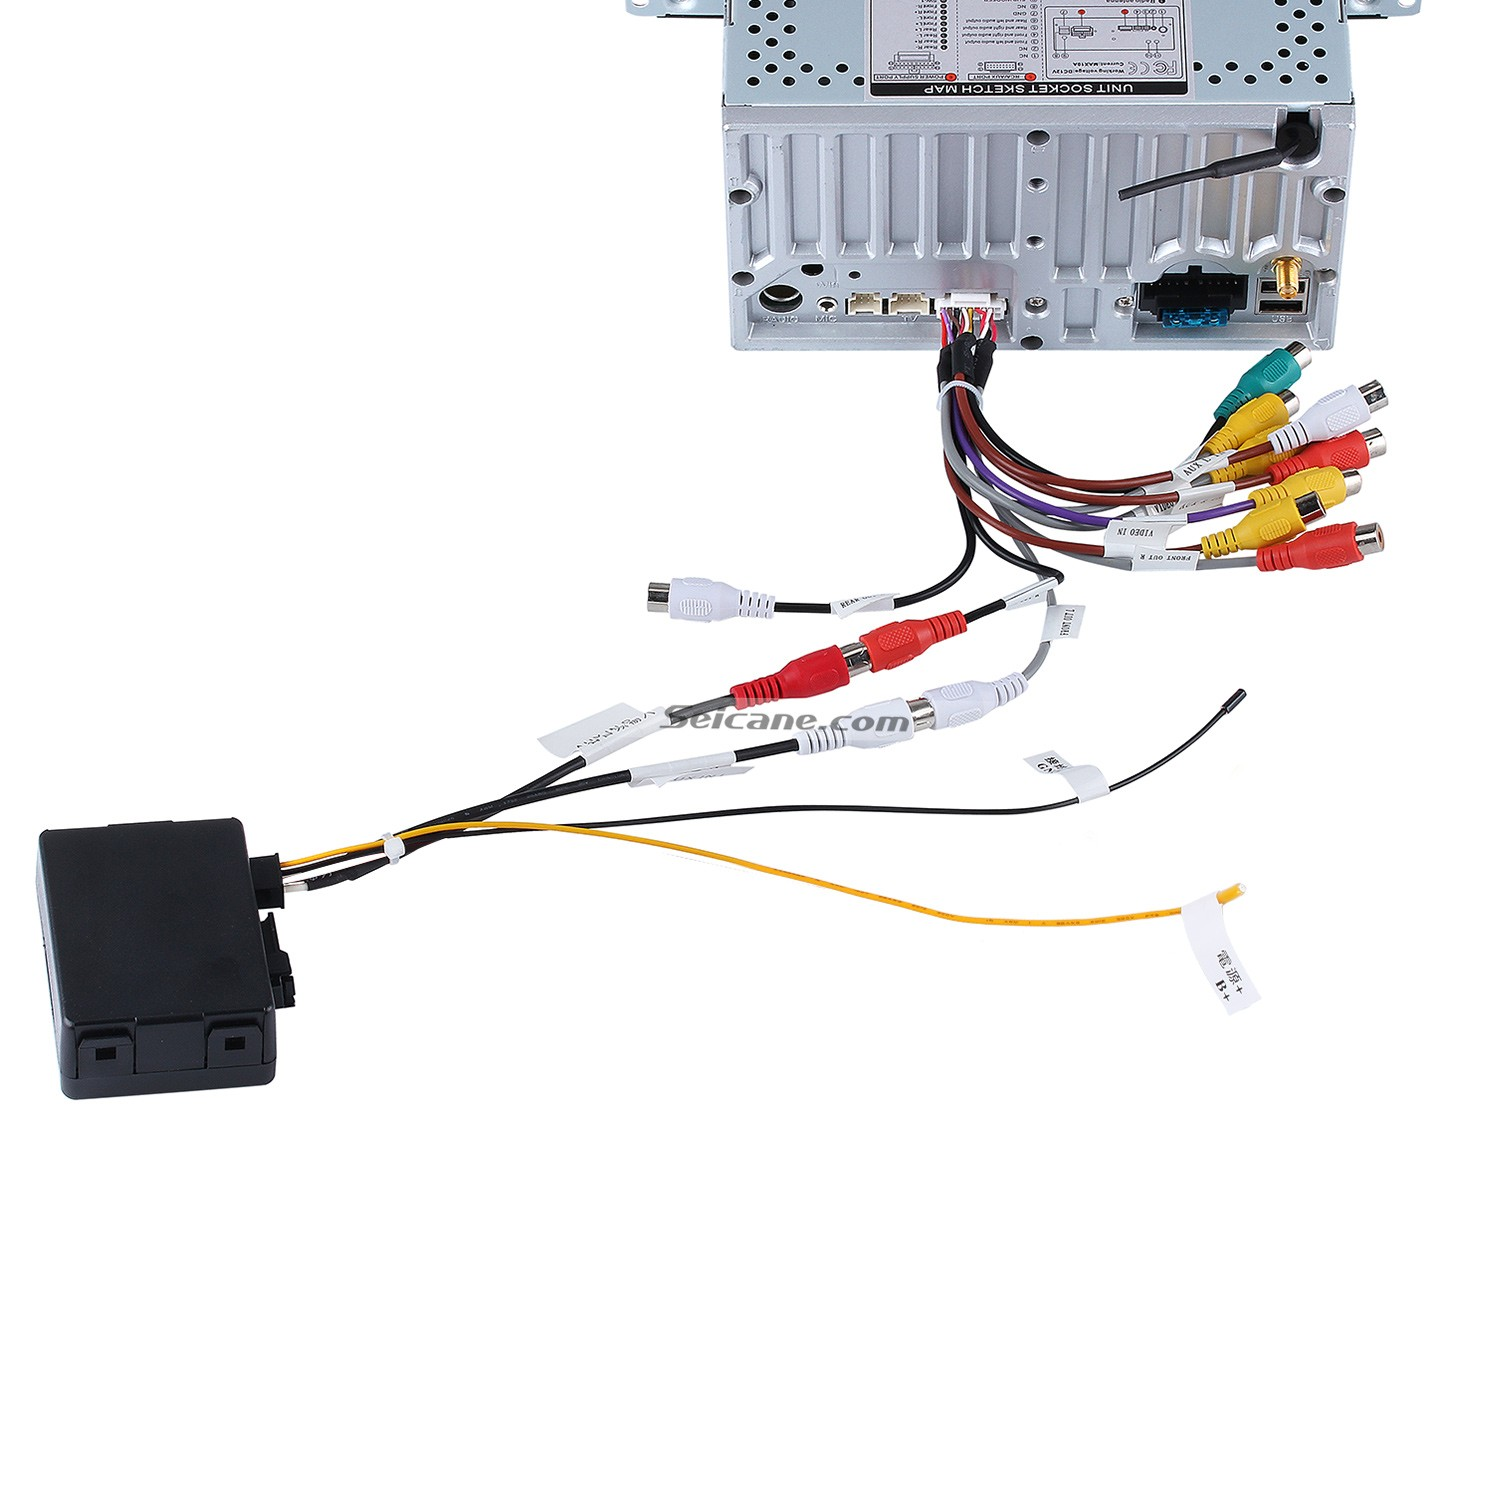 hight resolution of slk350 2006 stereo wiring harness adapter wiring diagram completed slk350 2006 stereo wiring harness adapter